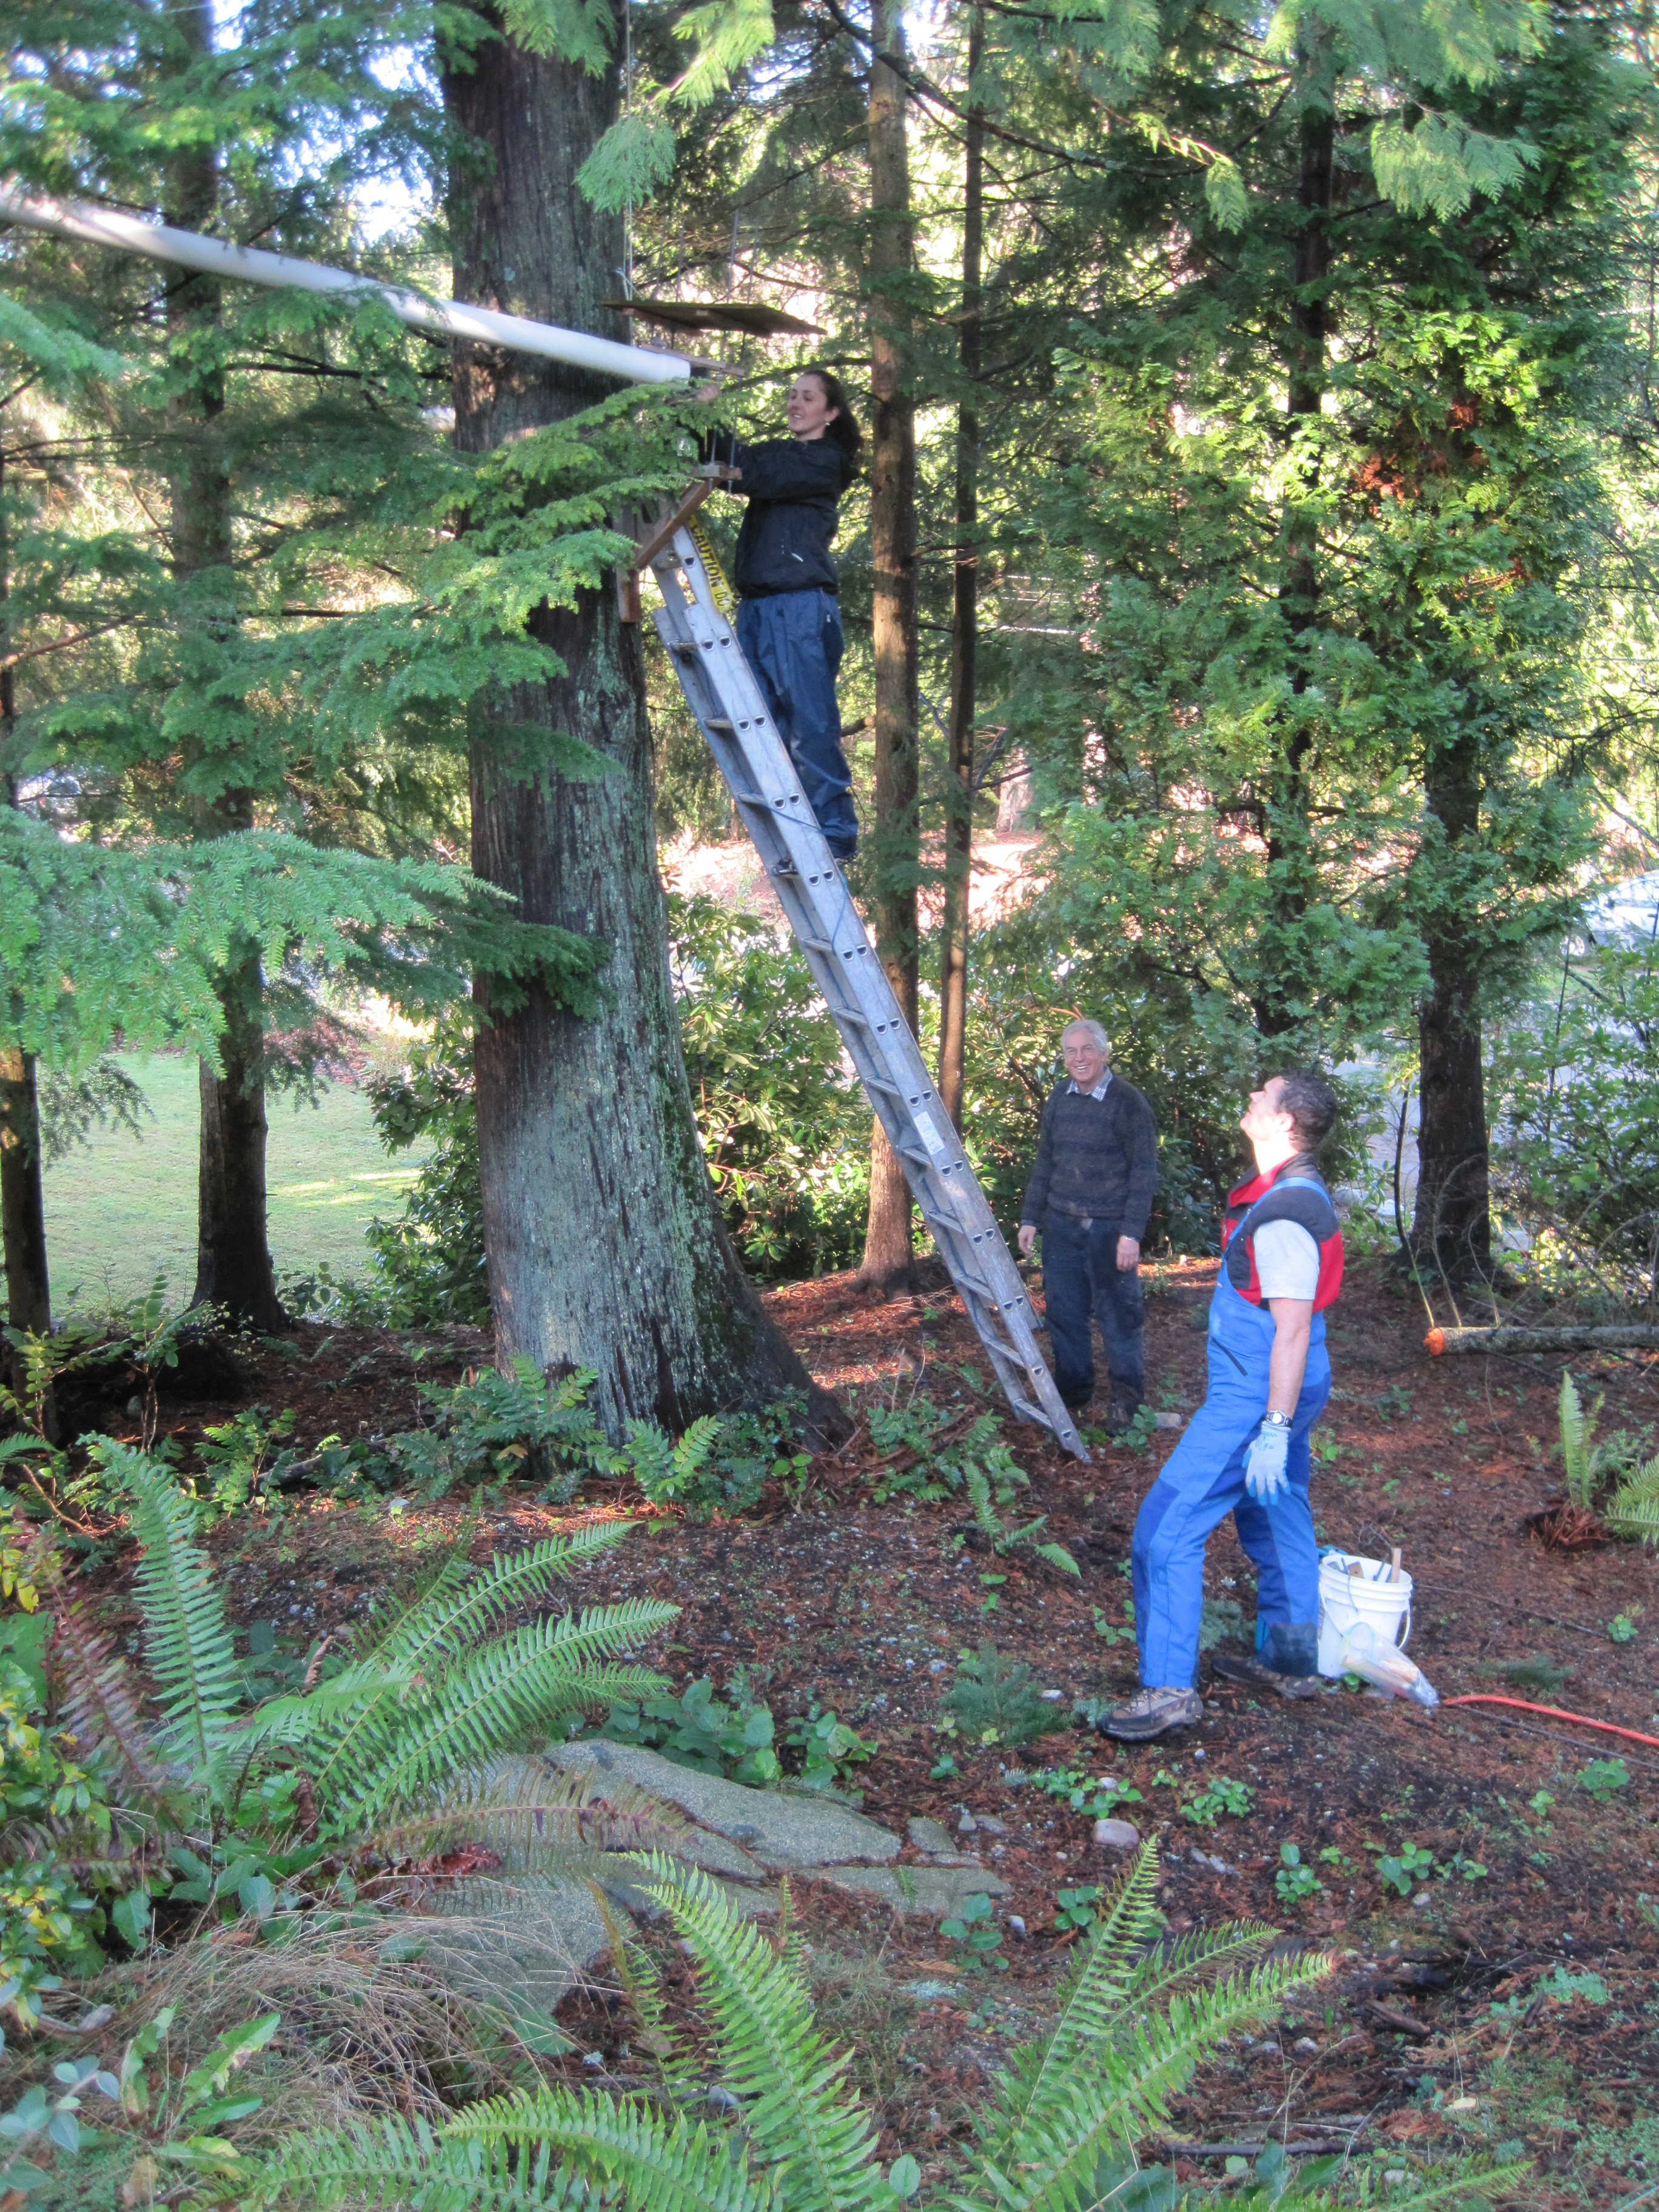 Canopy Monitoring Station installed in the Clovelly-Caulfeild neighbourhood of West Vancouver